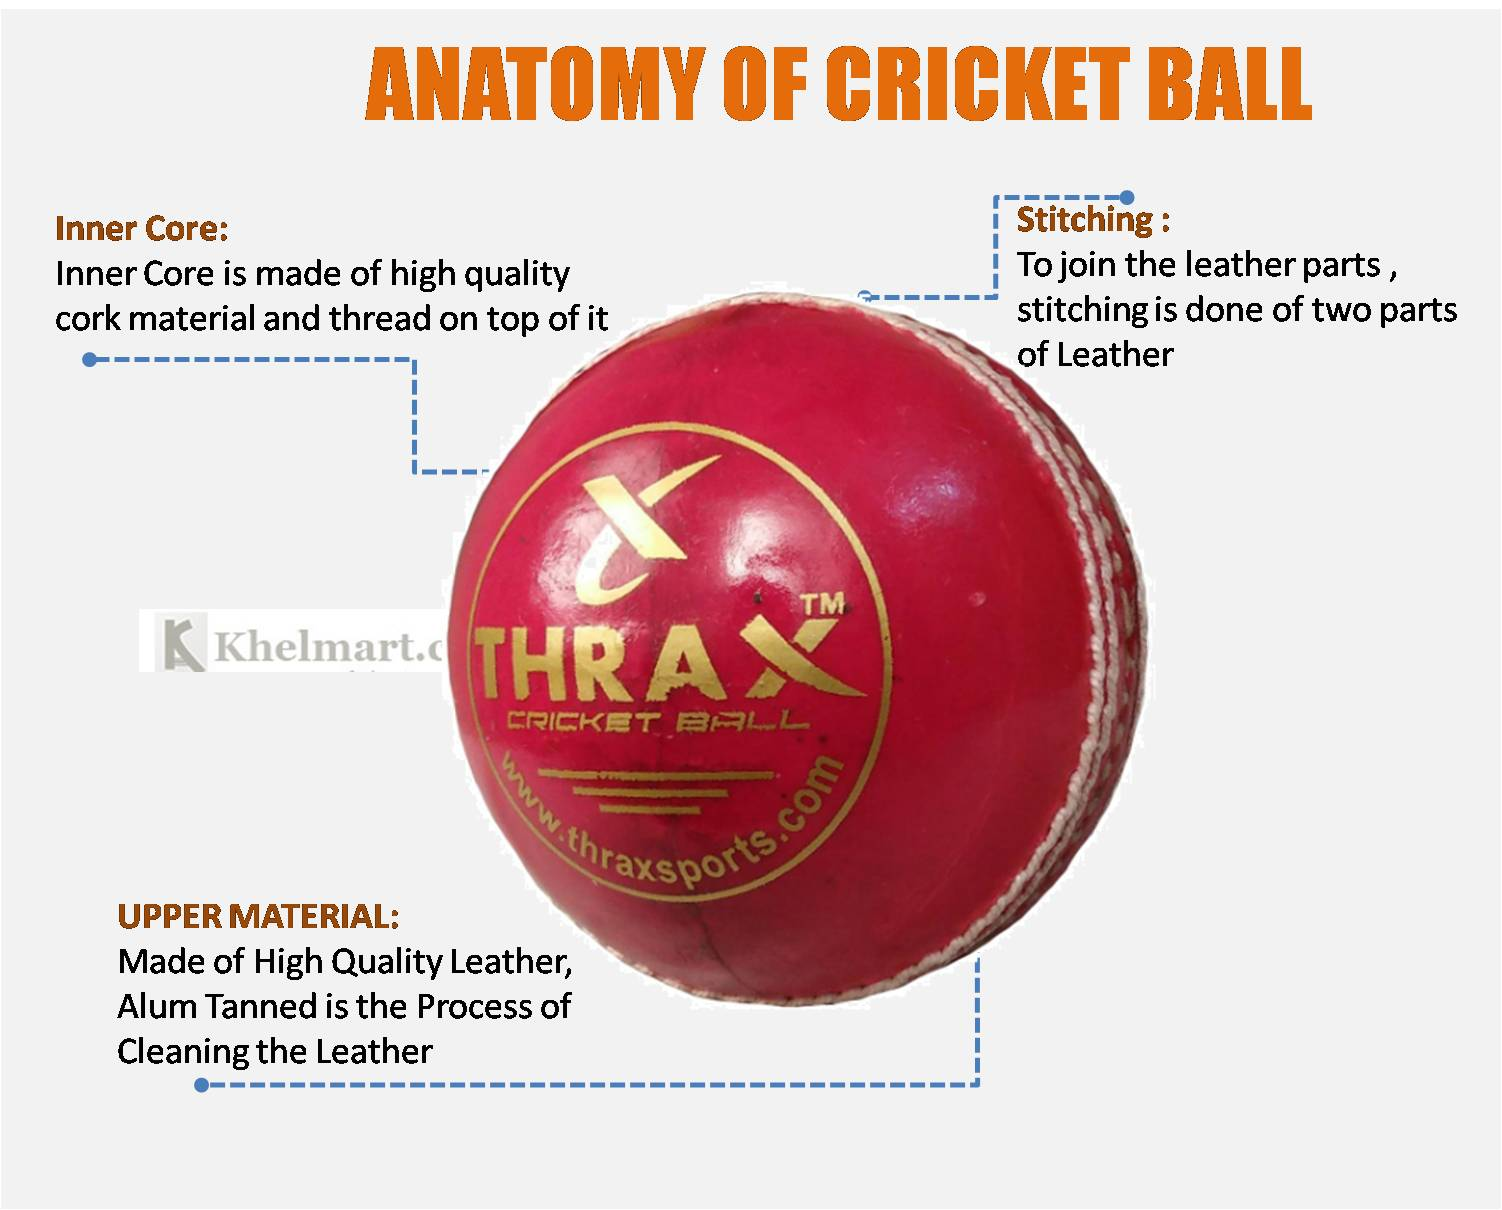 ANATOMY_OF_CRICKET_BALL_khelmart.jpg